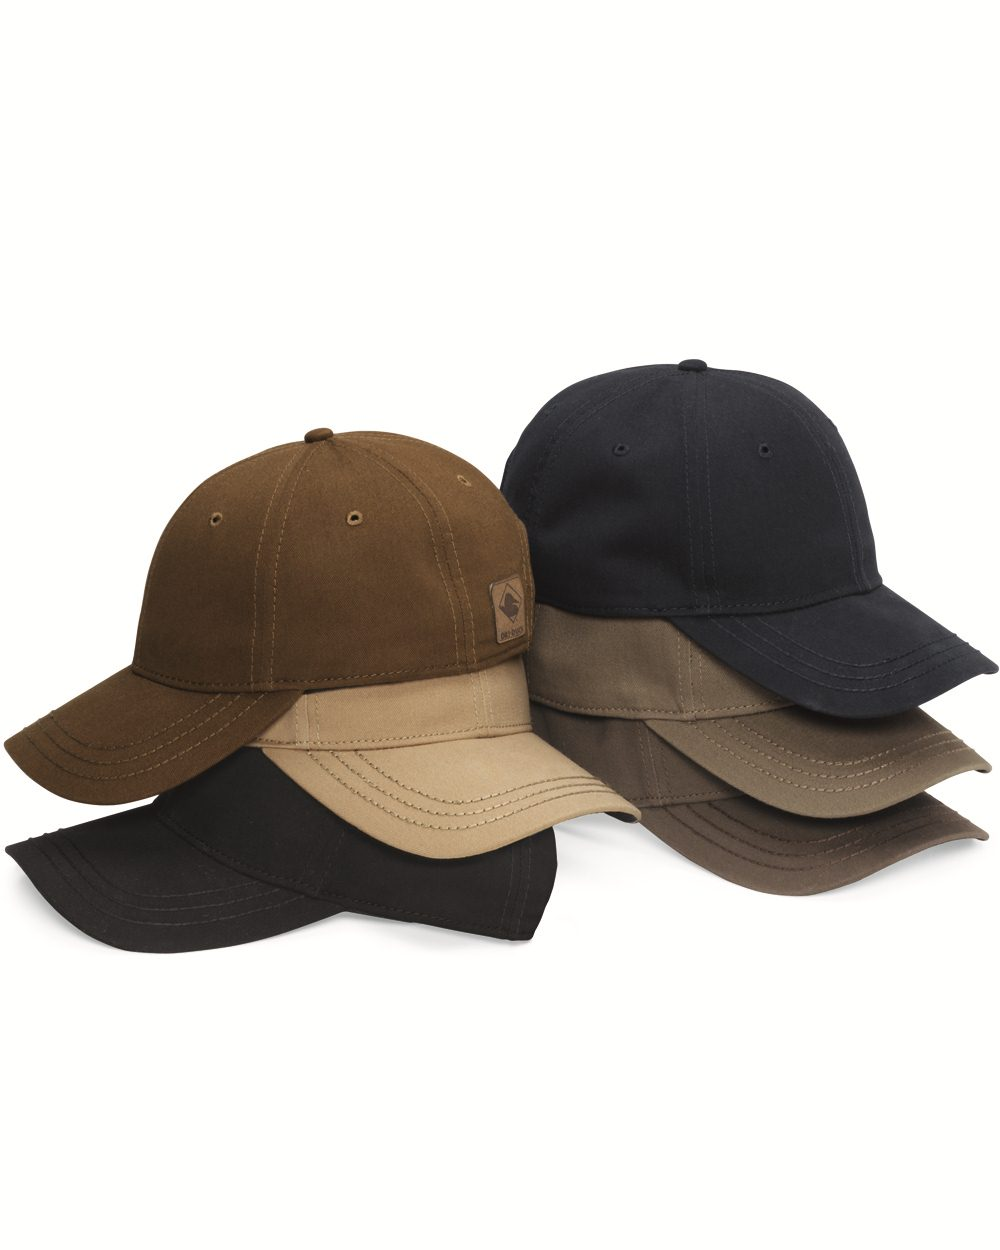 DRI DUCK 3220 - Heritage Brushed Twill Cap